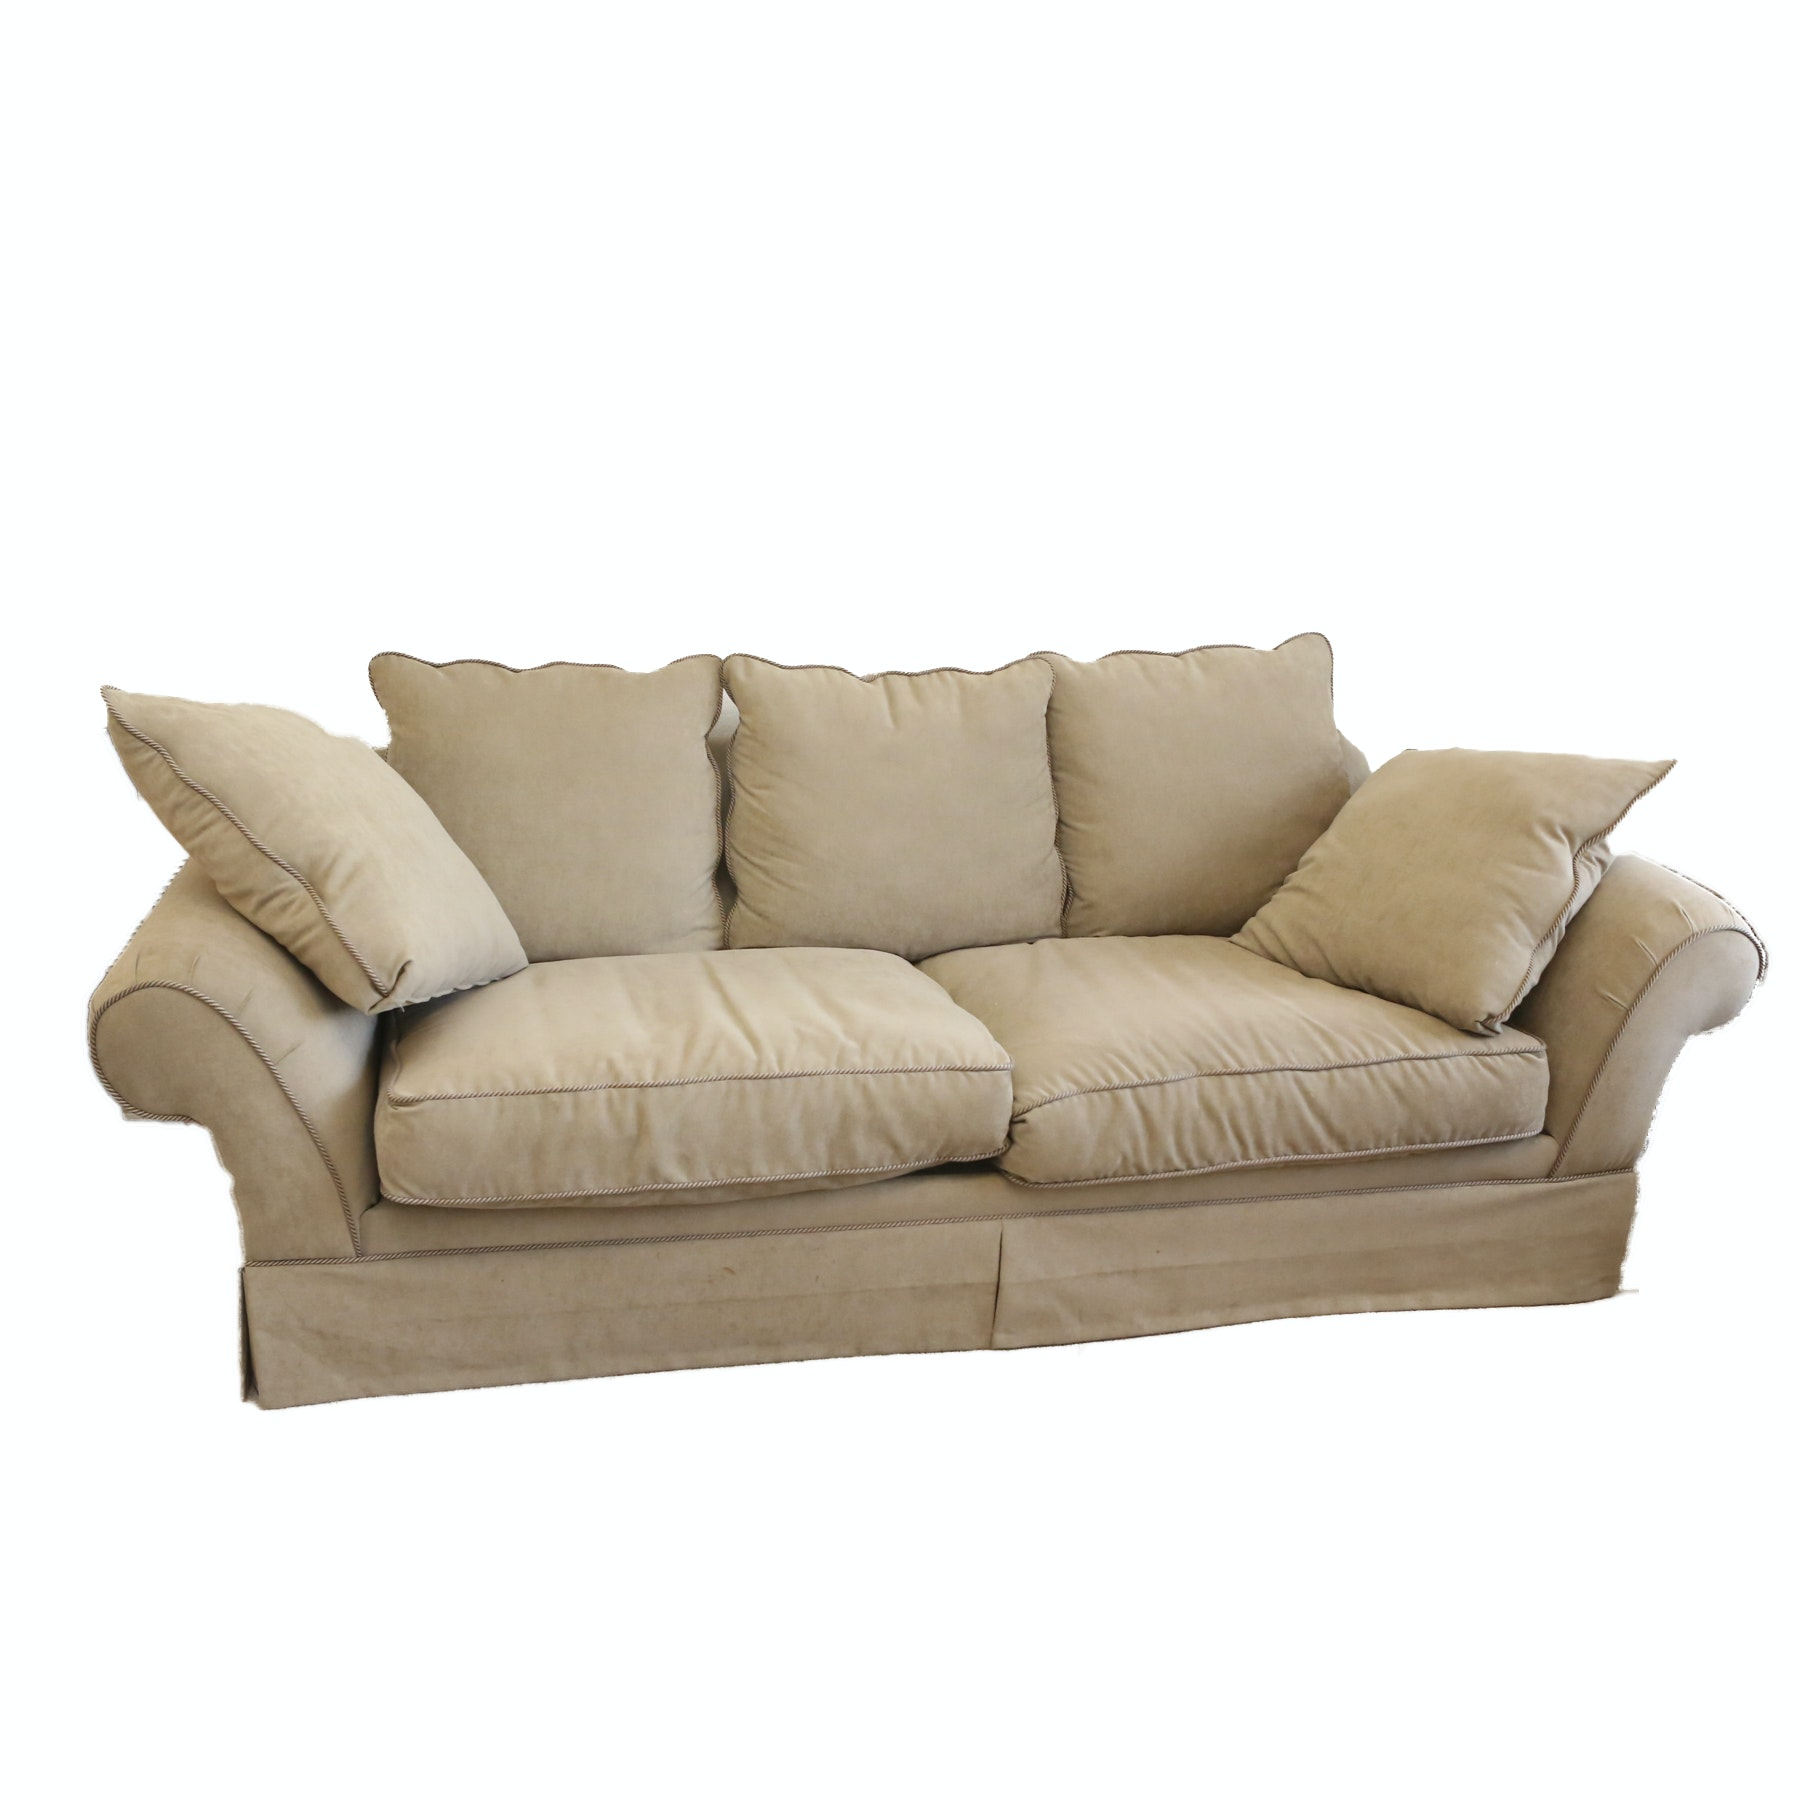 Storehouse Sofa in Sand